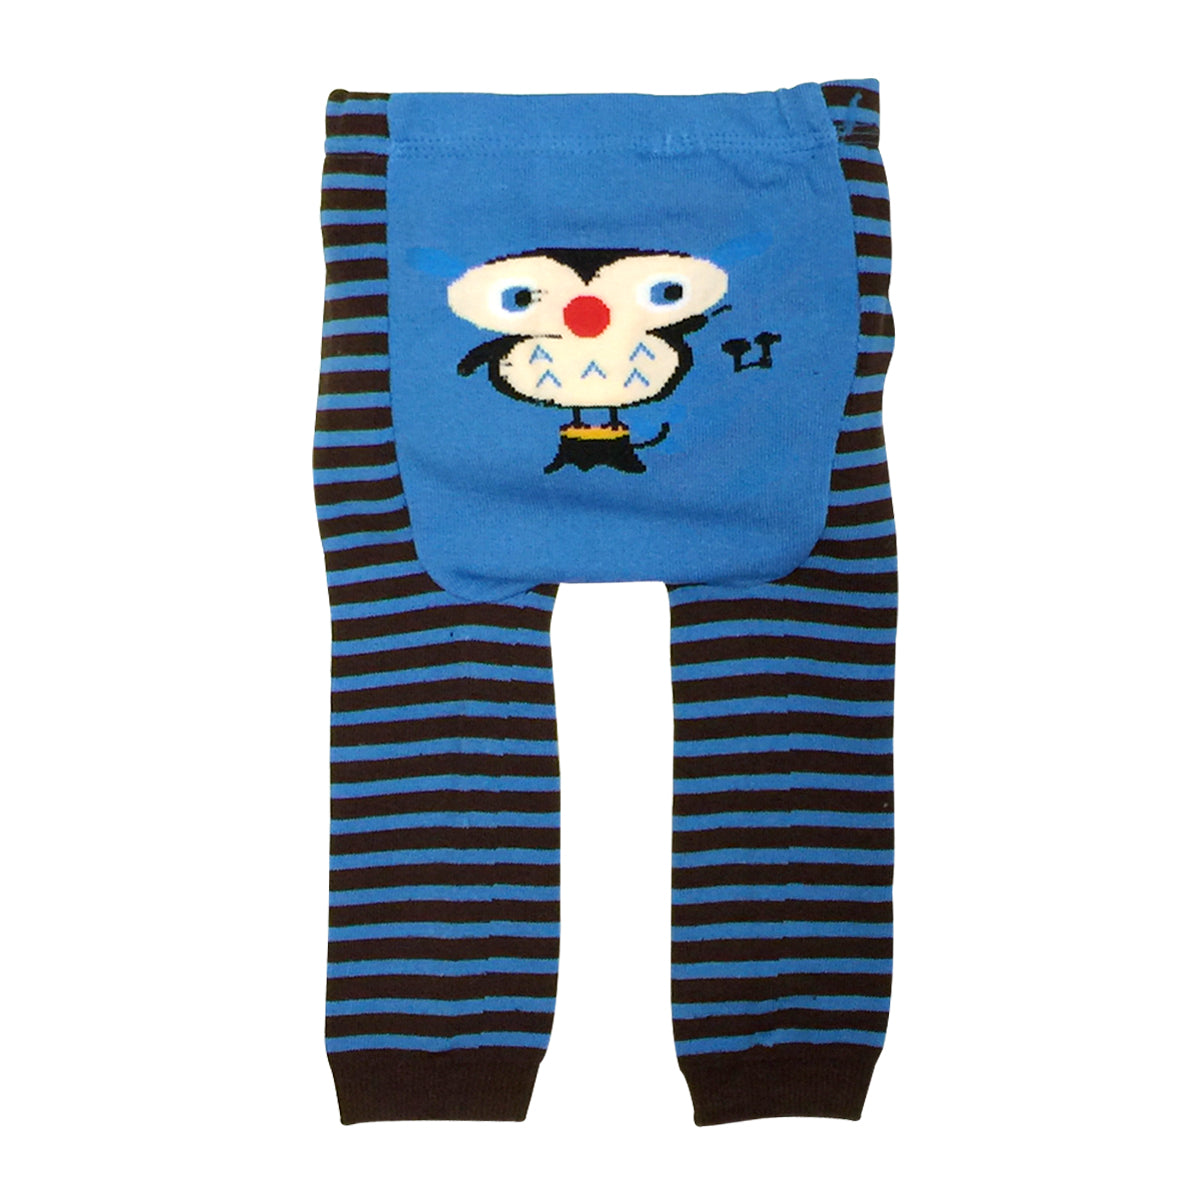 Wrapables Baby & Toddler Busha Leggings, Owl and Stripes